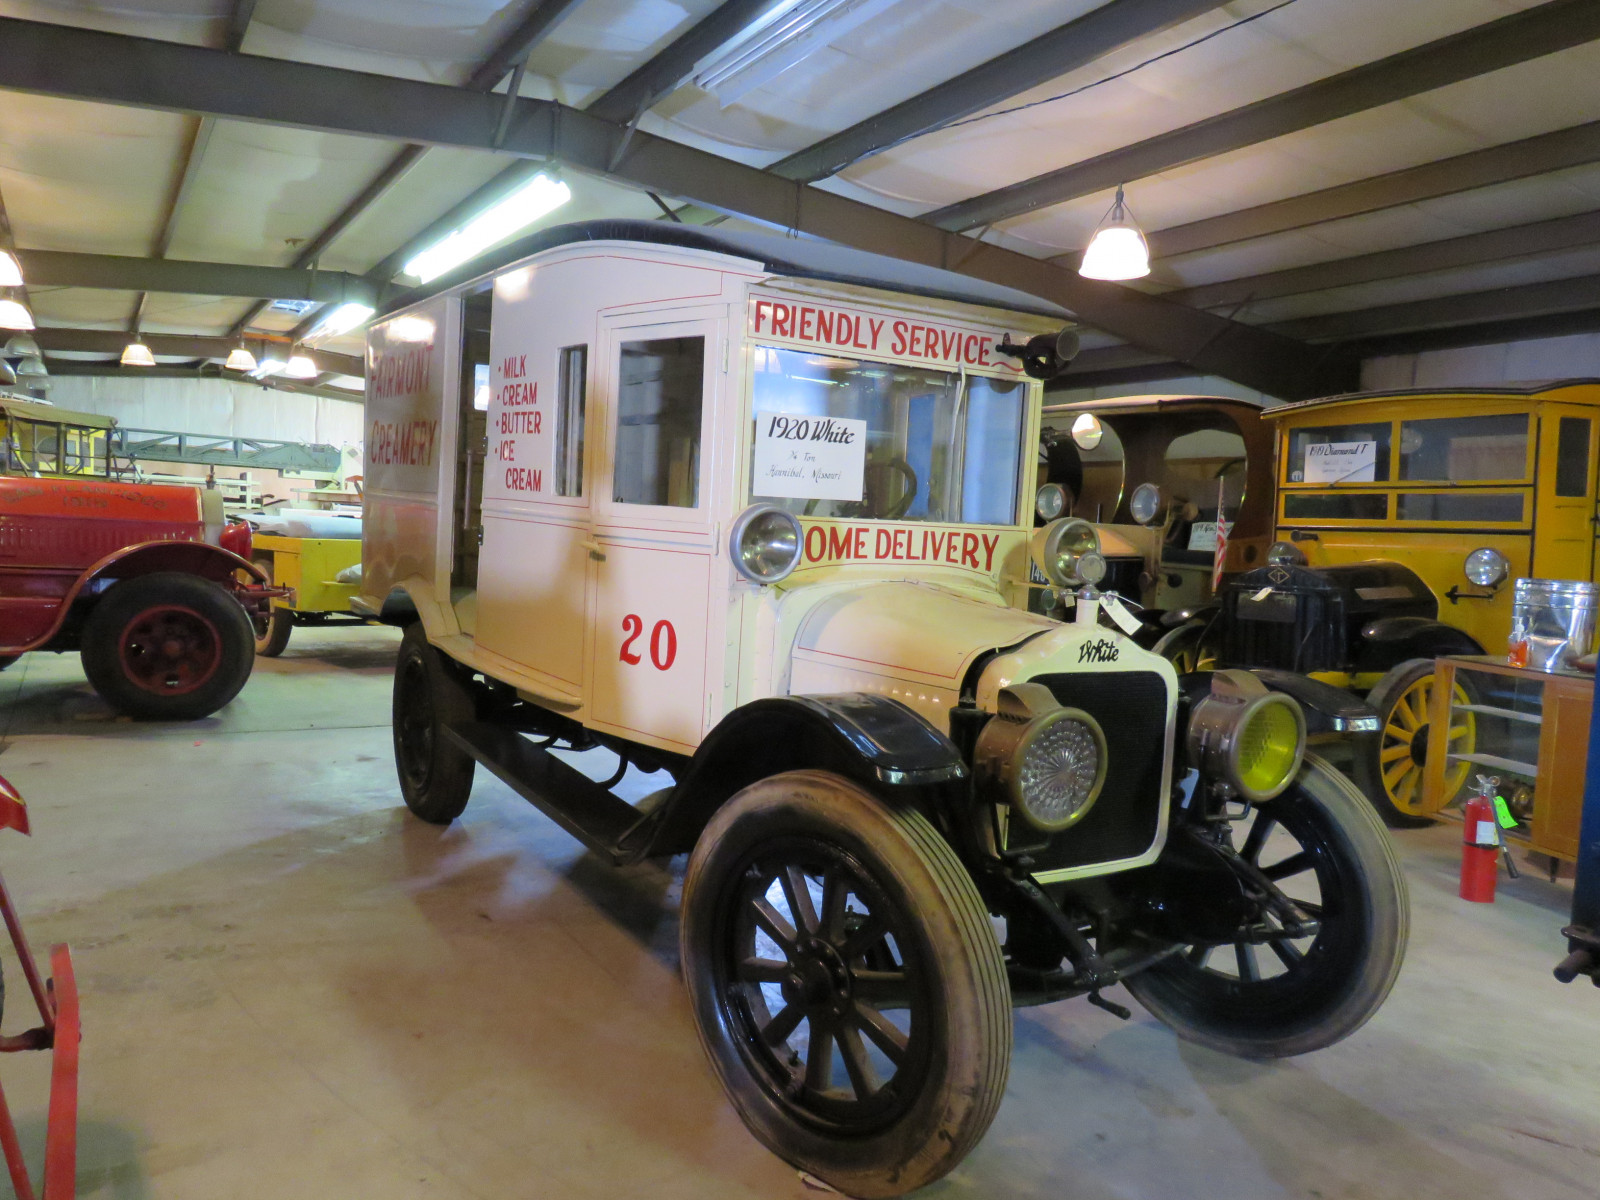 RARE 1920 White Panel Delivery Truck - Image 1